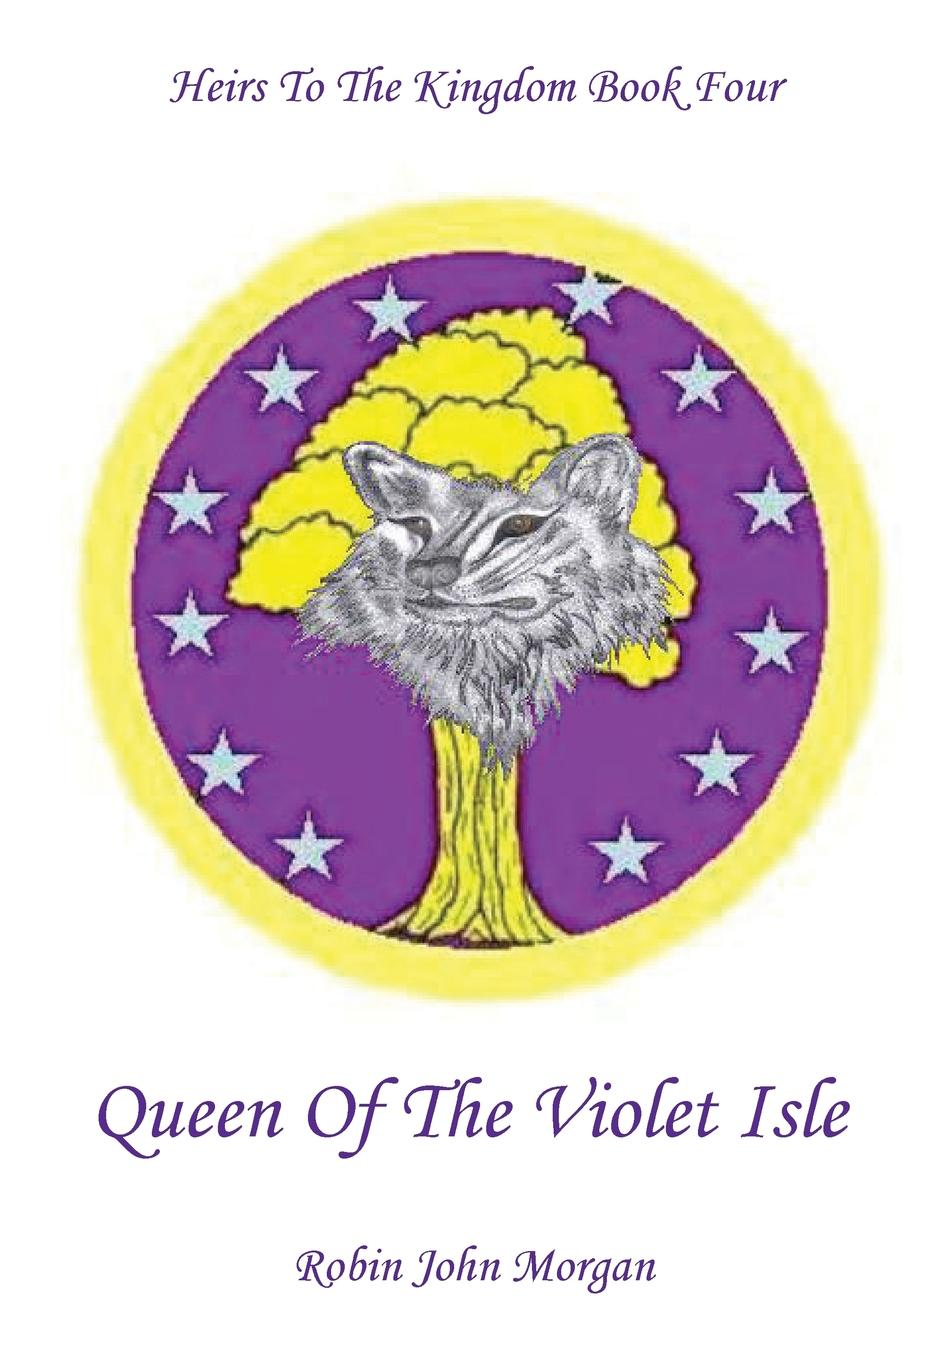 Heirs to the Kingdom Book Four: Queen of the Violet Isle